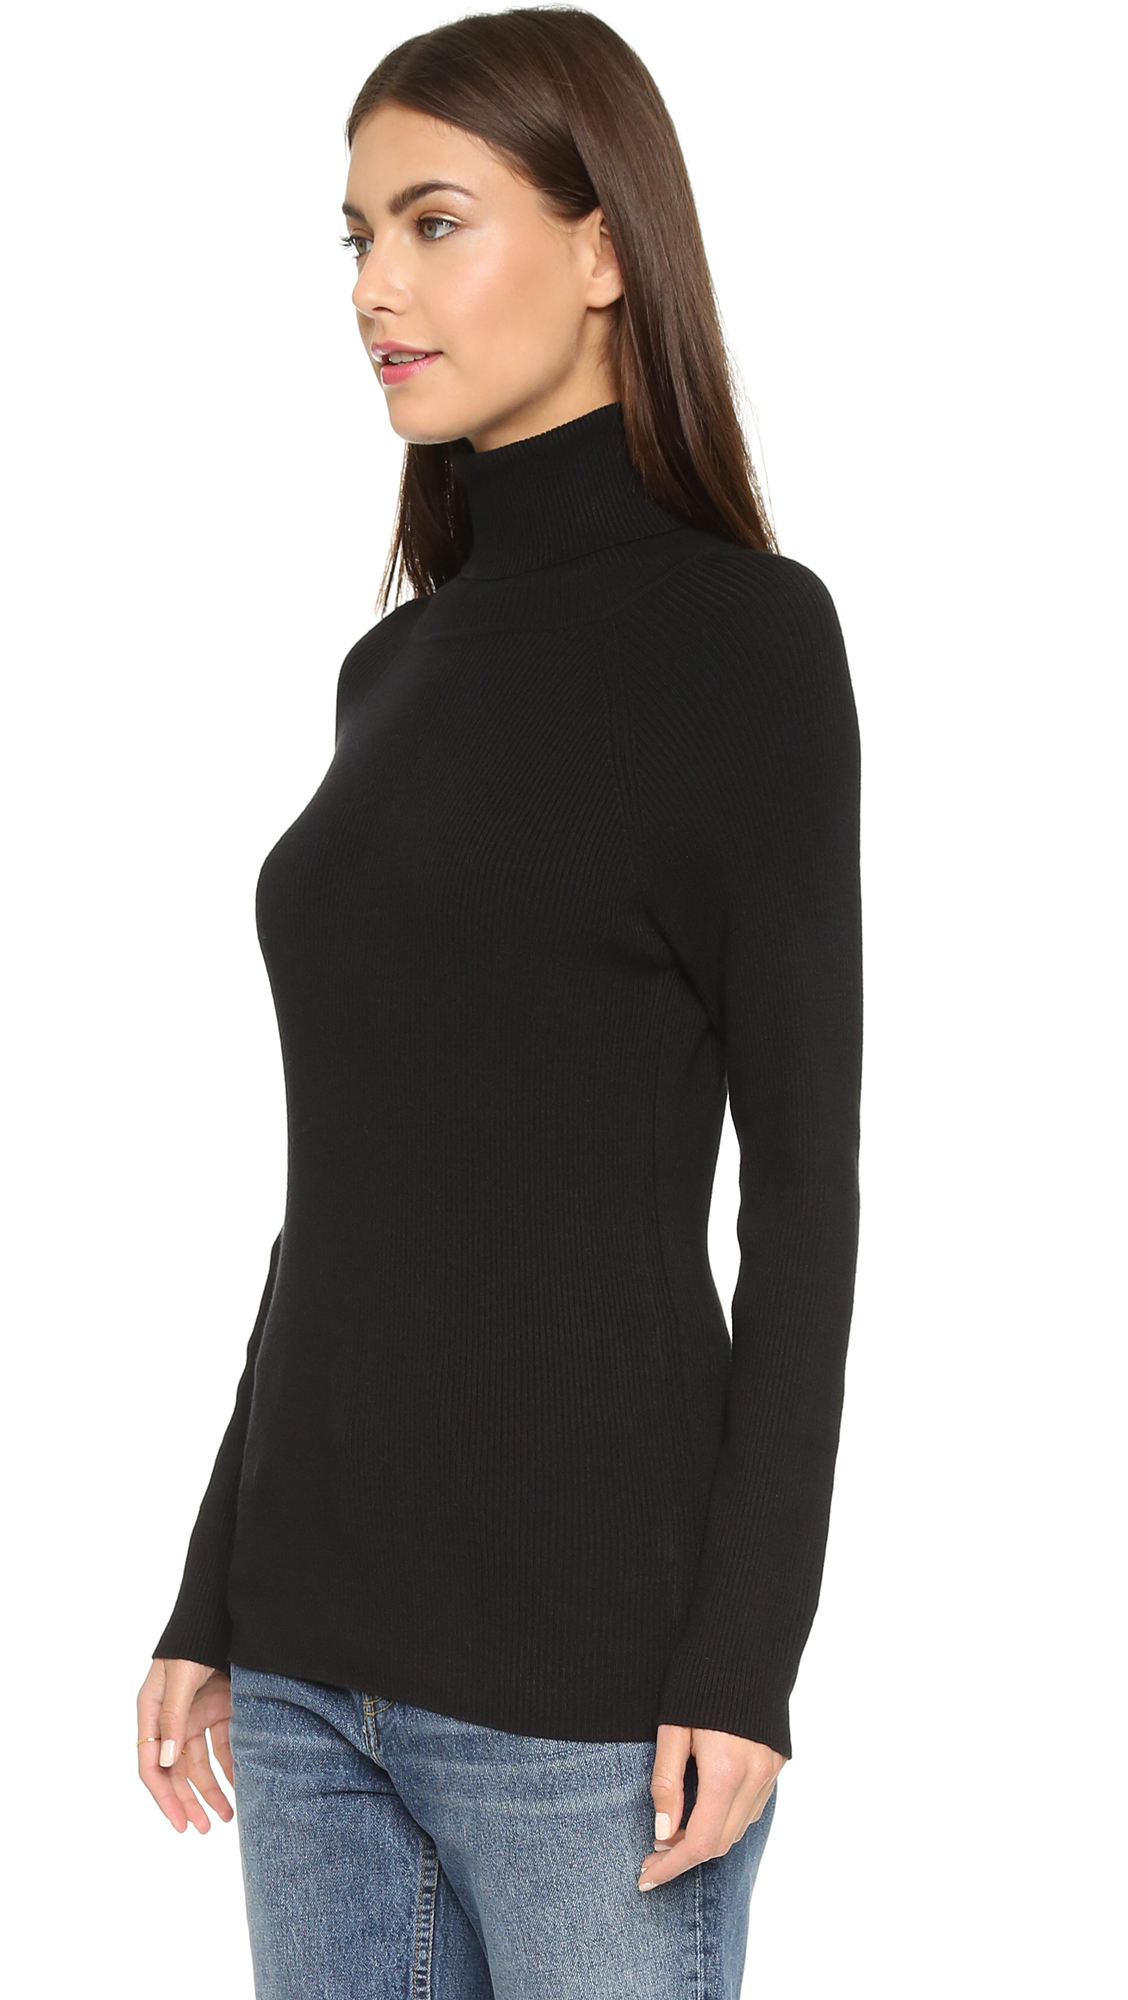 525 america Ribbed Turtleneck Sweater in Black | Lyst